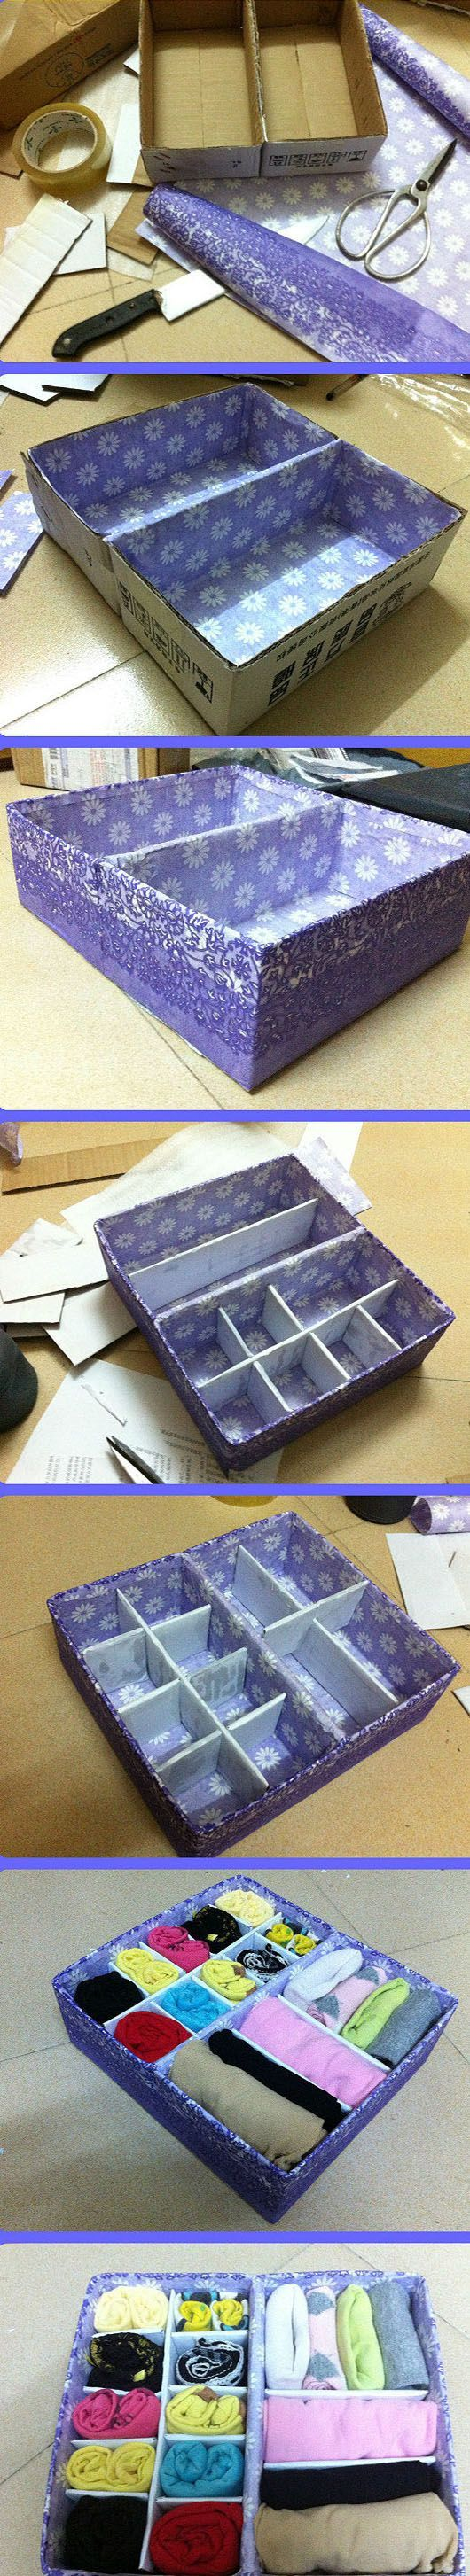 Diy Carton Container | DIY & Crafts Tutorials